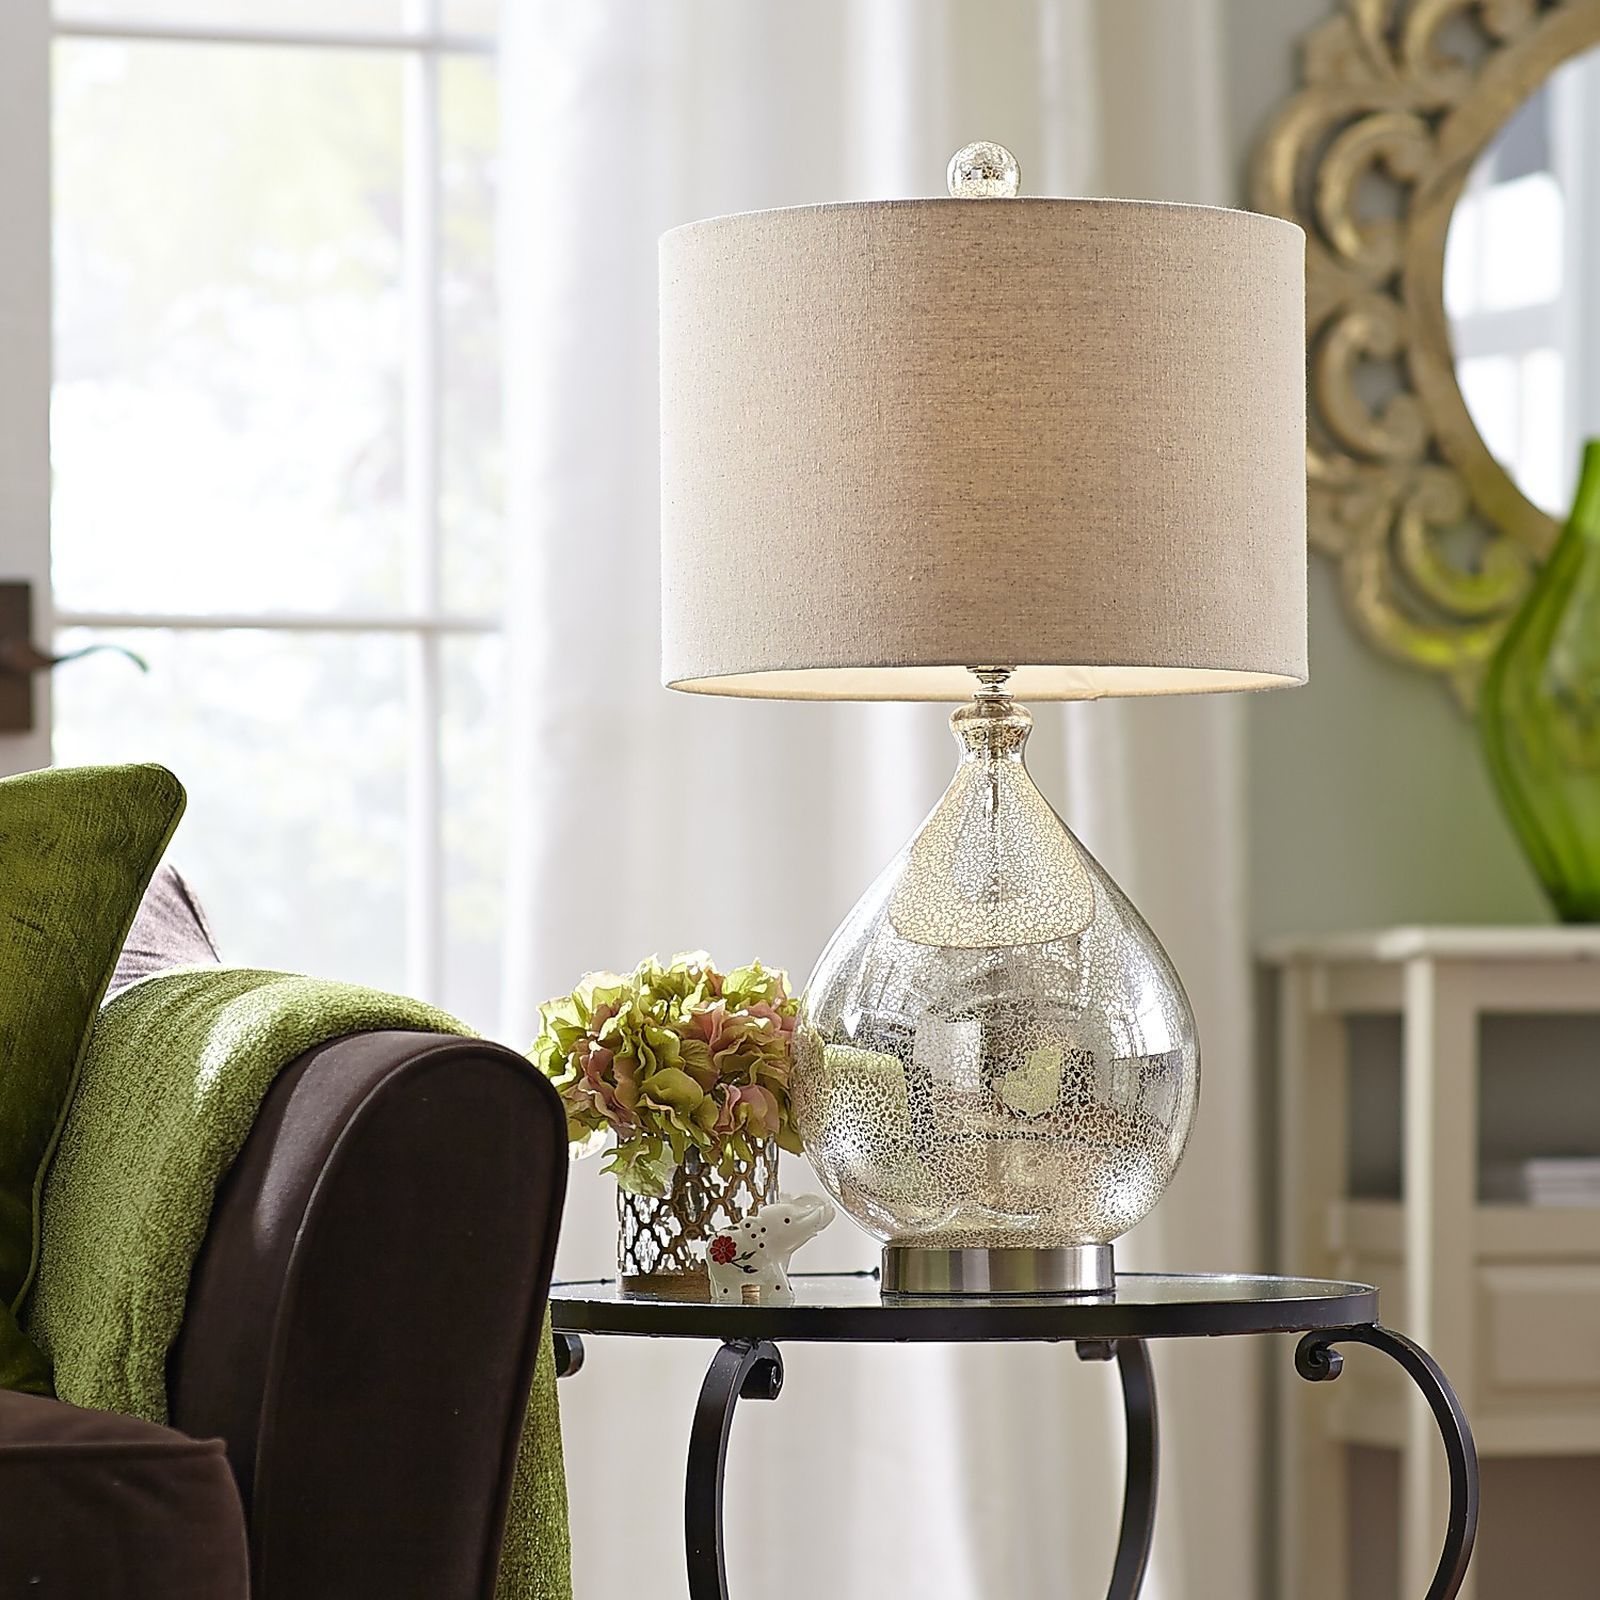 lamps for living room best accent chairs teardrop luxe table lamp modern farmhouse decor pinterest our mercury glass with a champagne colored shade is worthy of toast or two not only does it make an artful addition to your space